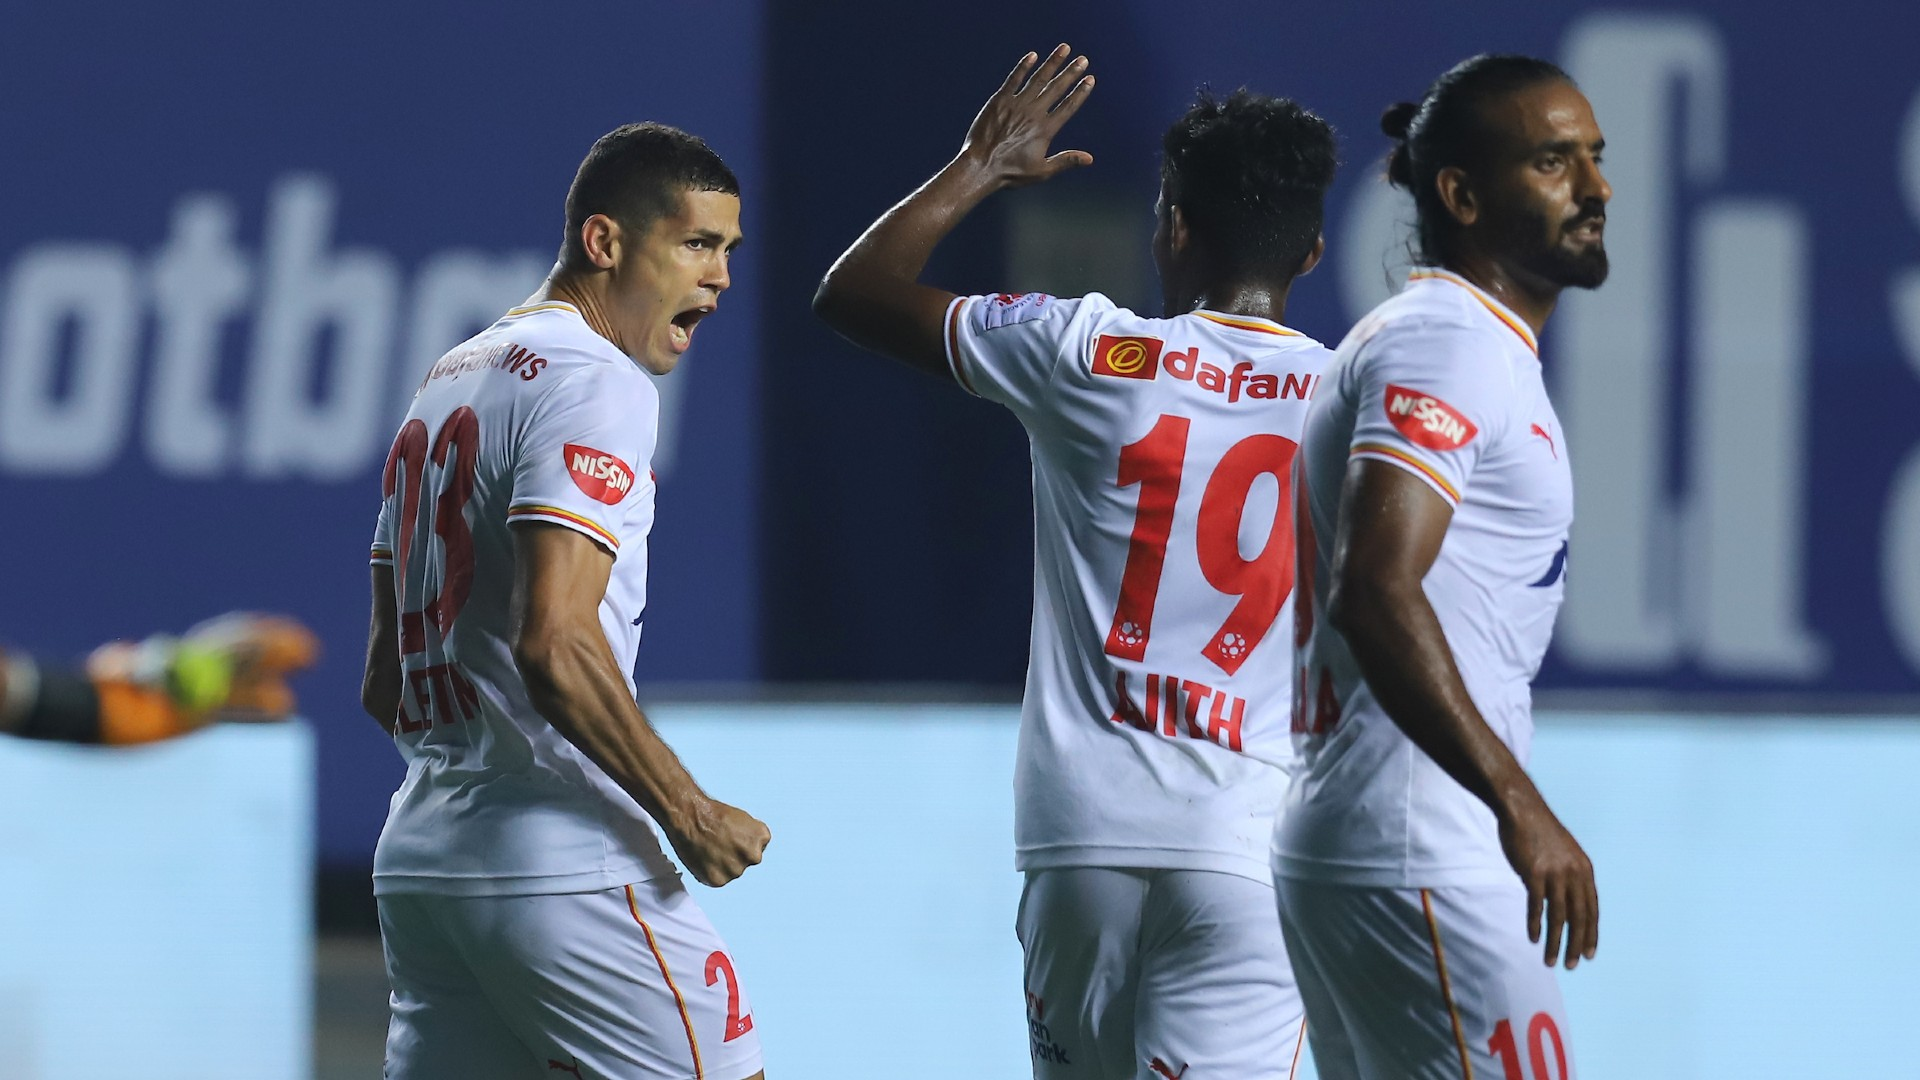 East Bengal 0-1 Bengaluru FC LIVE: Silva scores the opening goal for the Blues